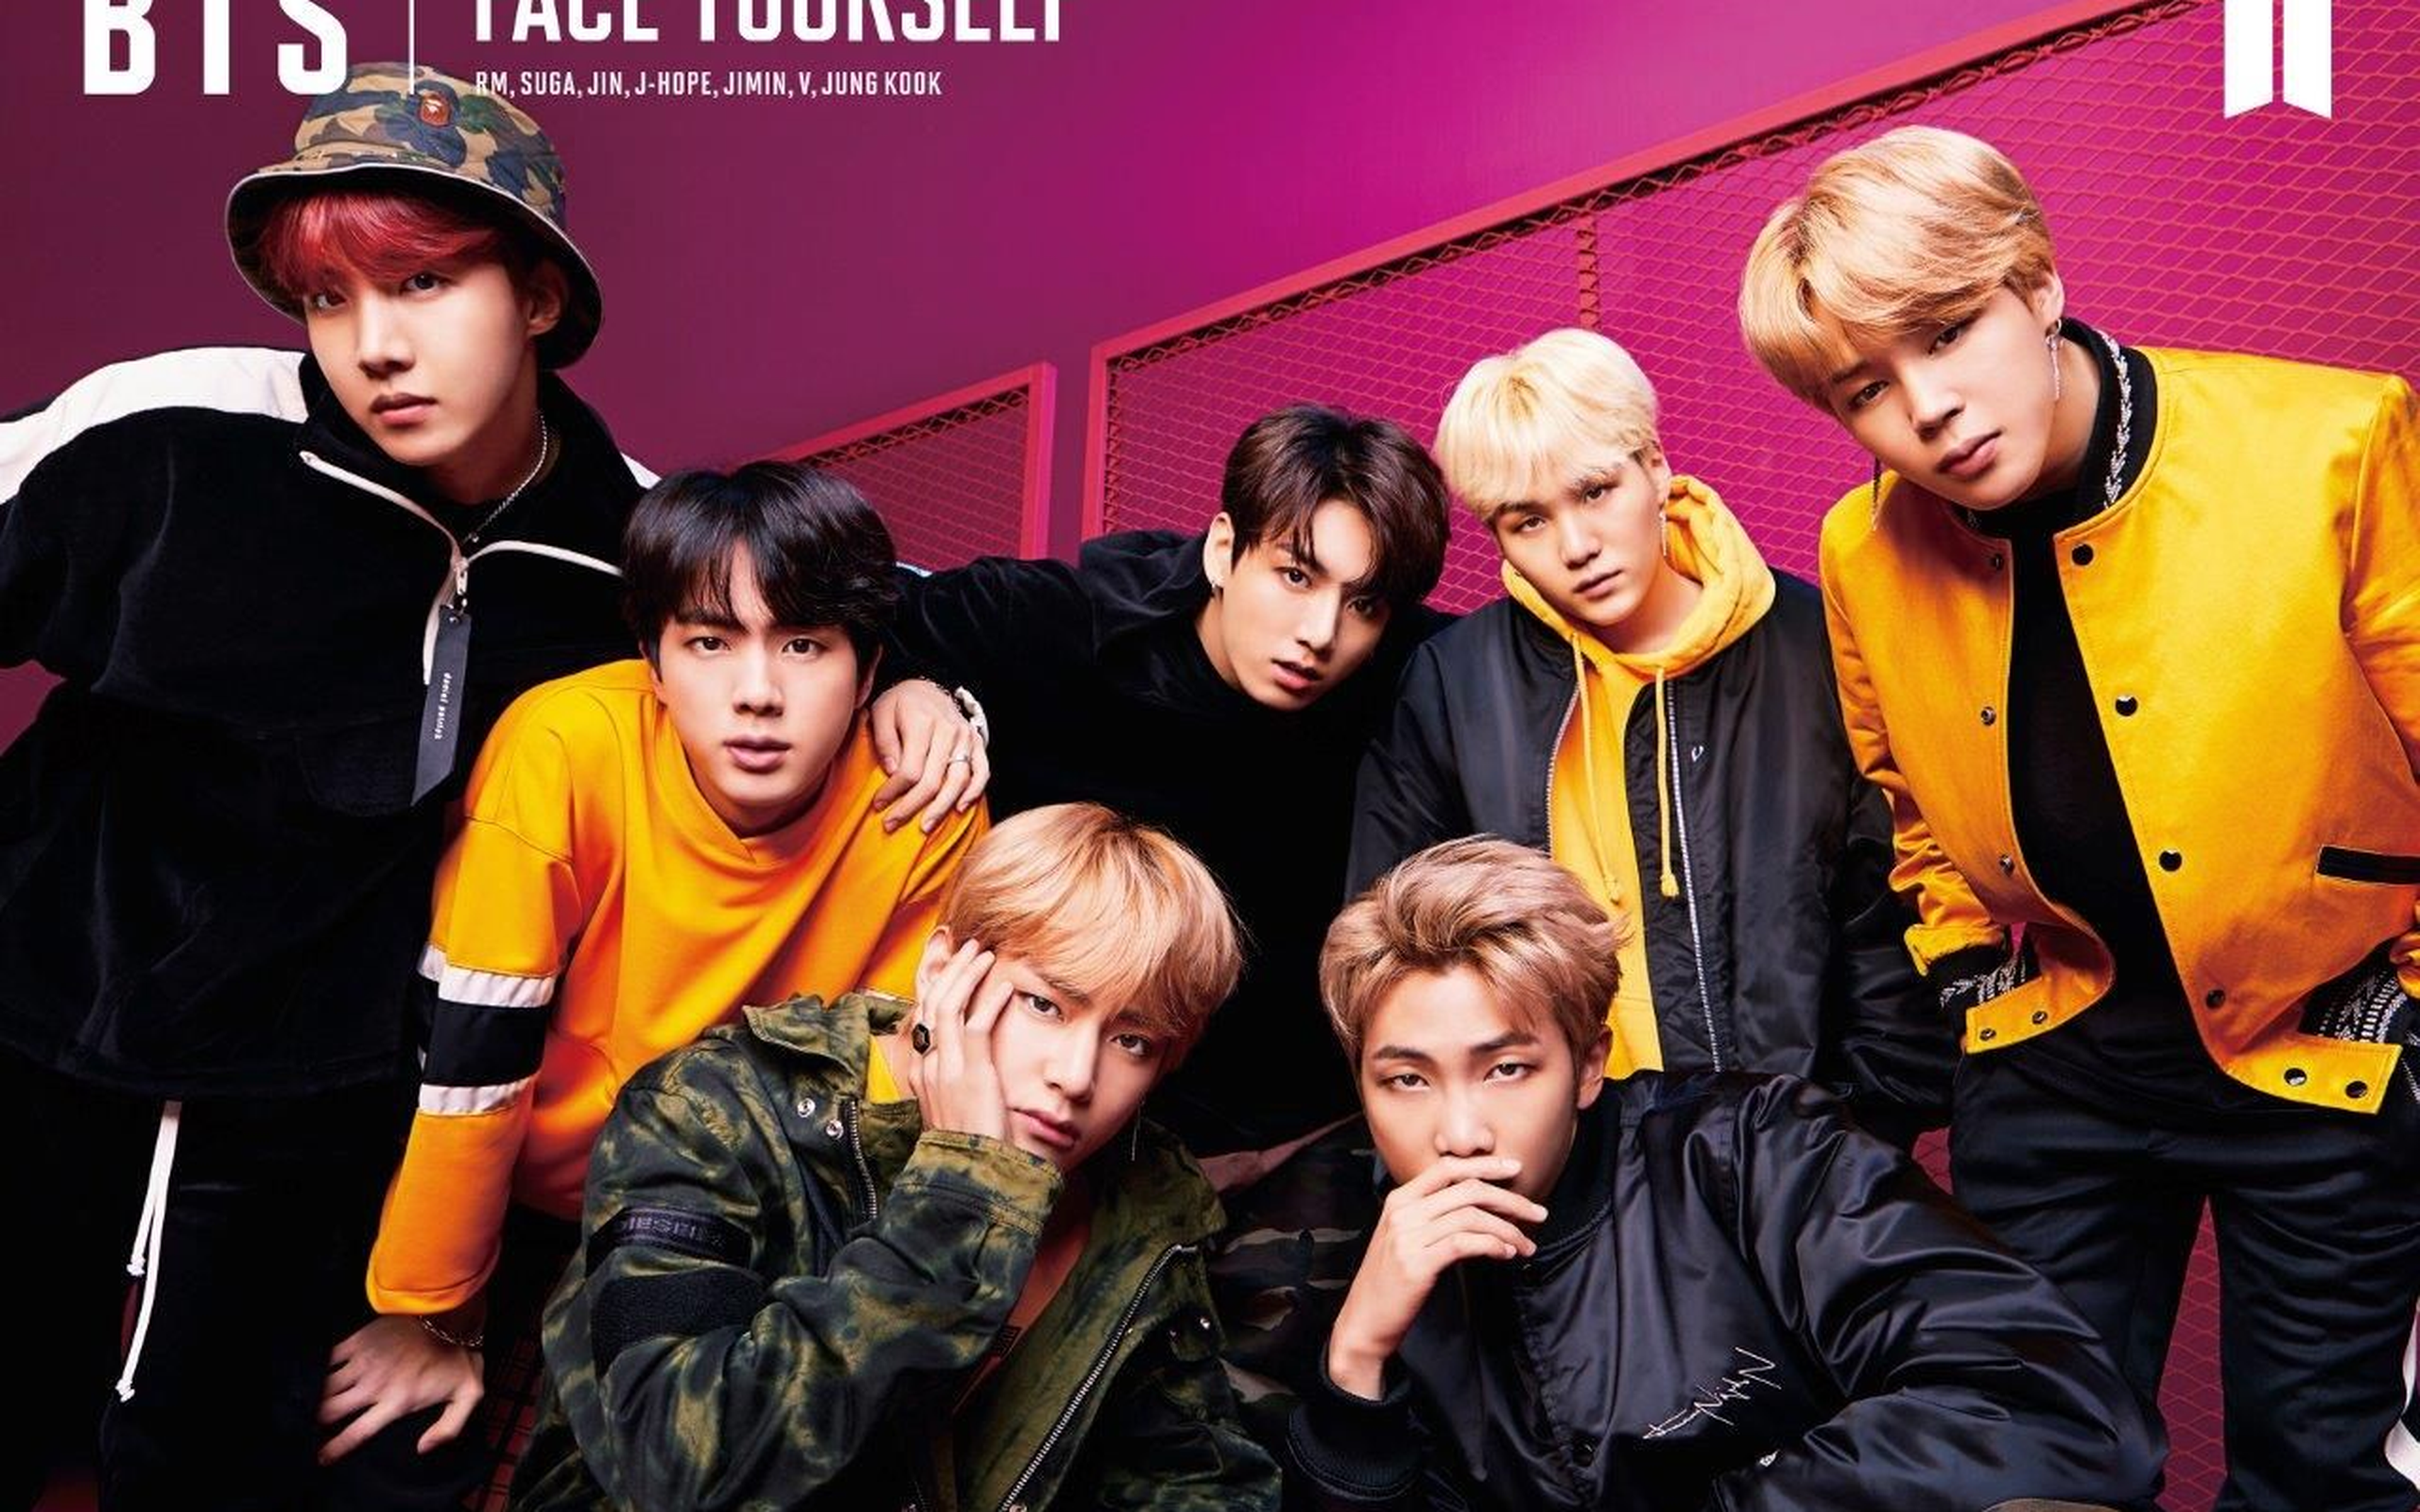 Download Face Yourself BTS for 4K Ultra HD 1610 Wallpaper